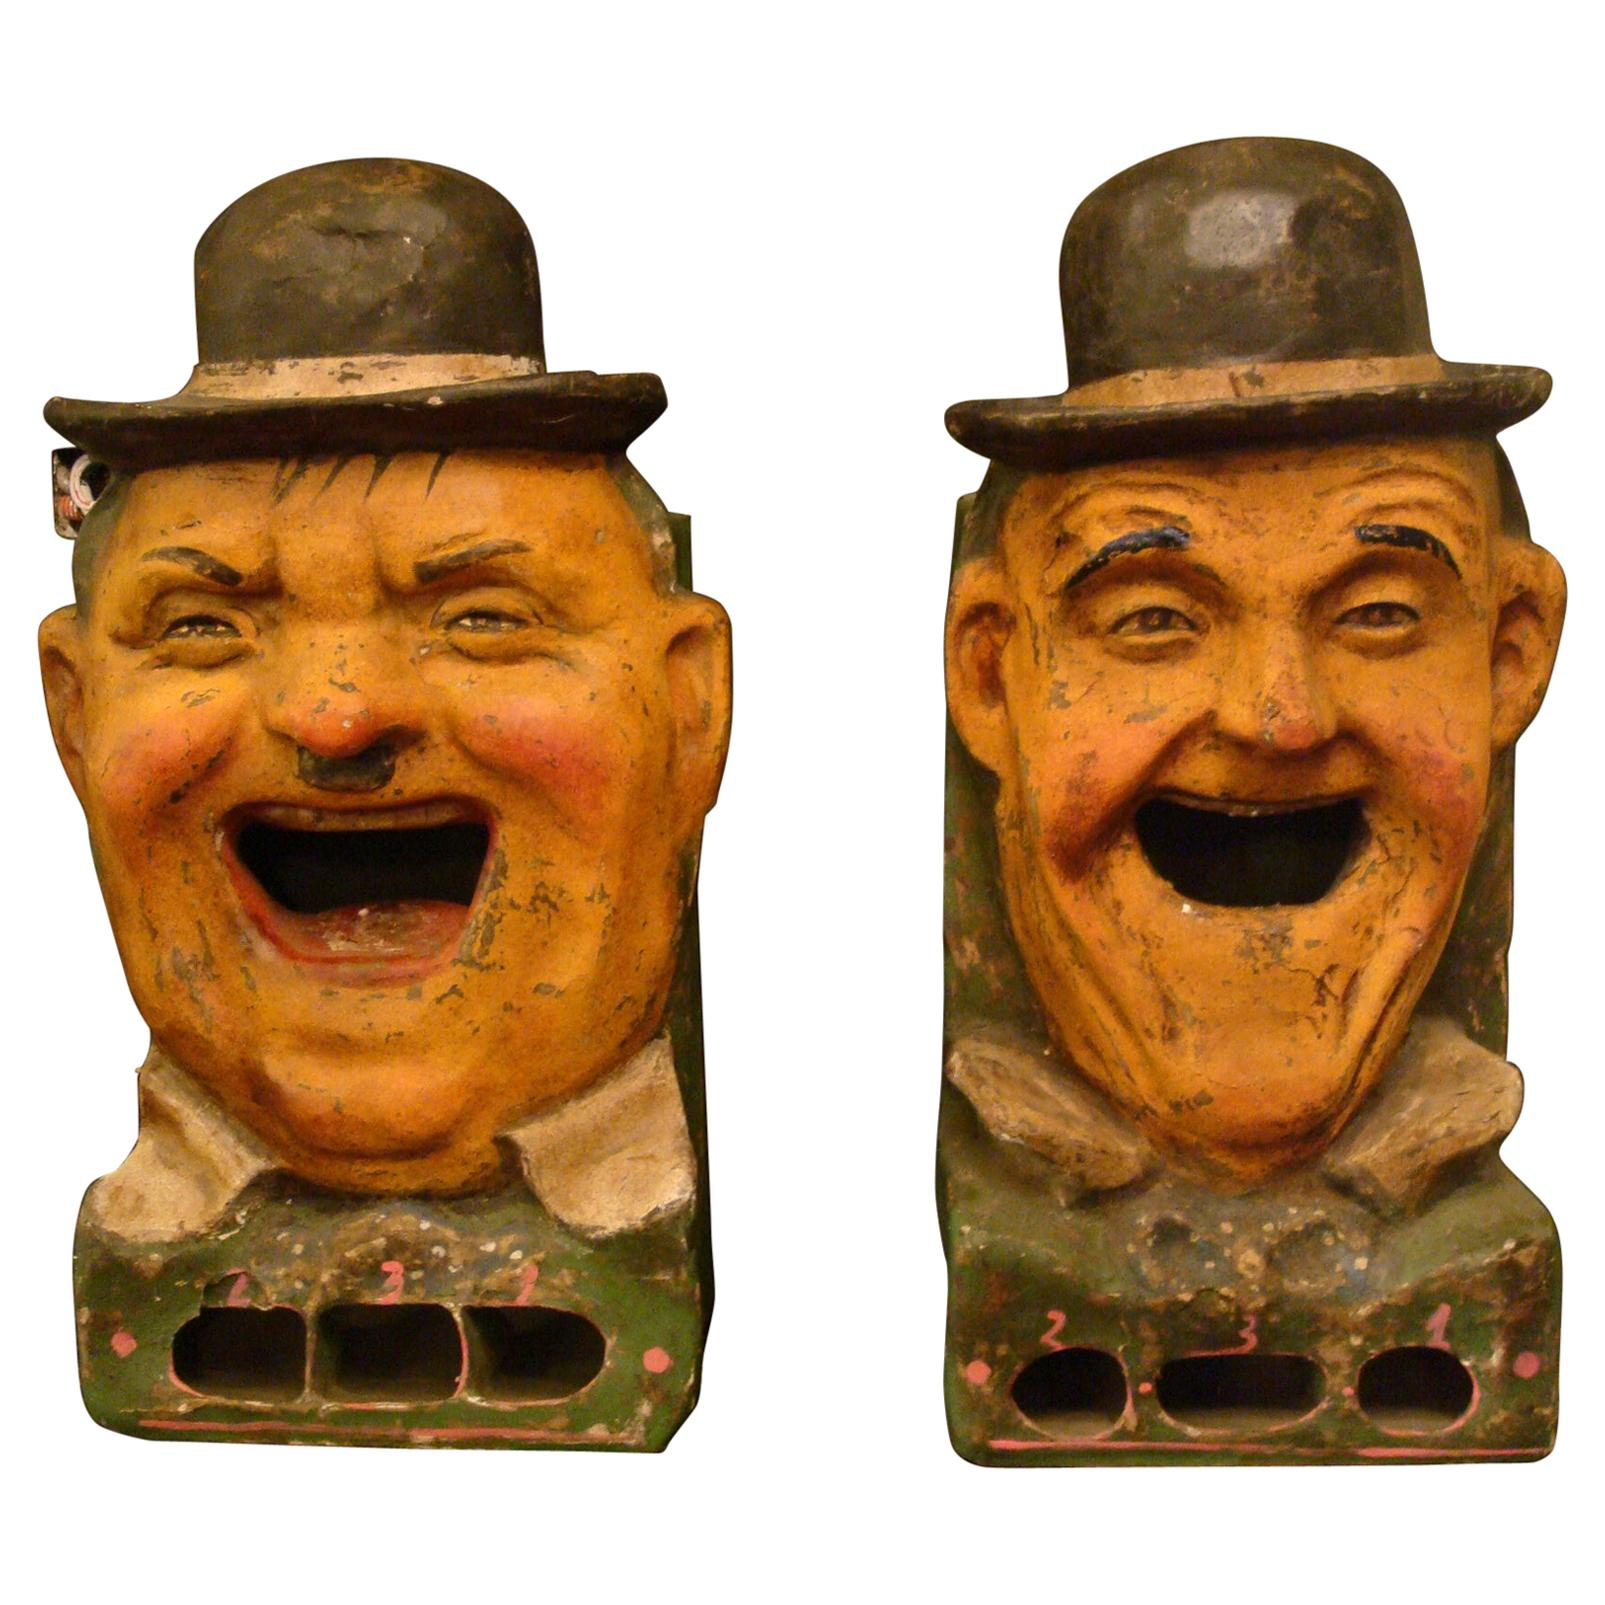 Tossing Game Paper Mâché 'Laurel and Hardy' Carnival Art, 1930s